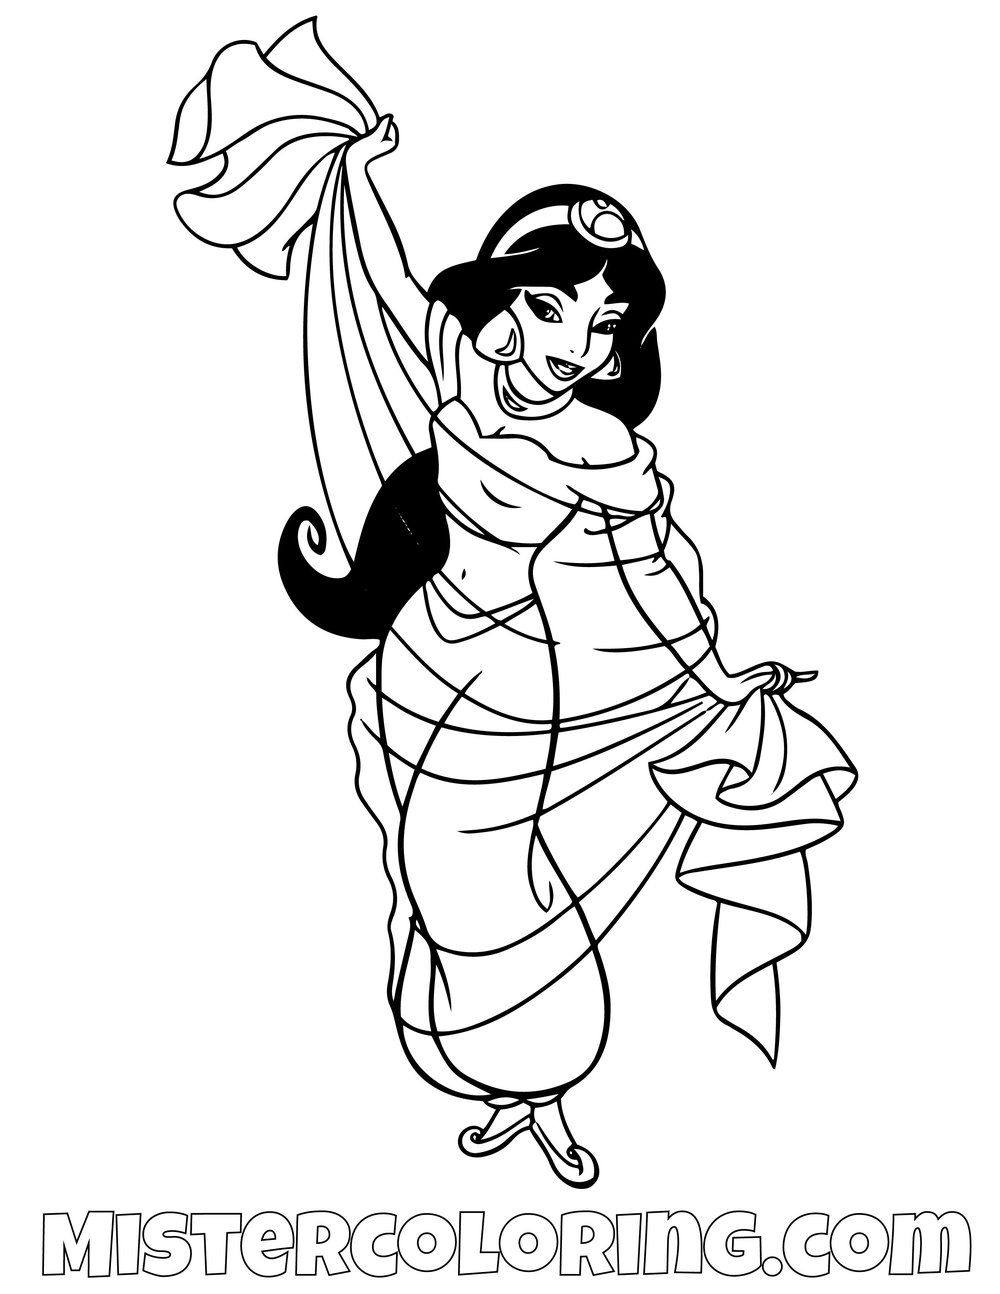 Princess Jasmine Dancing Aladdin Coloring Page For Kids Princess